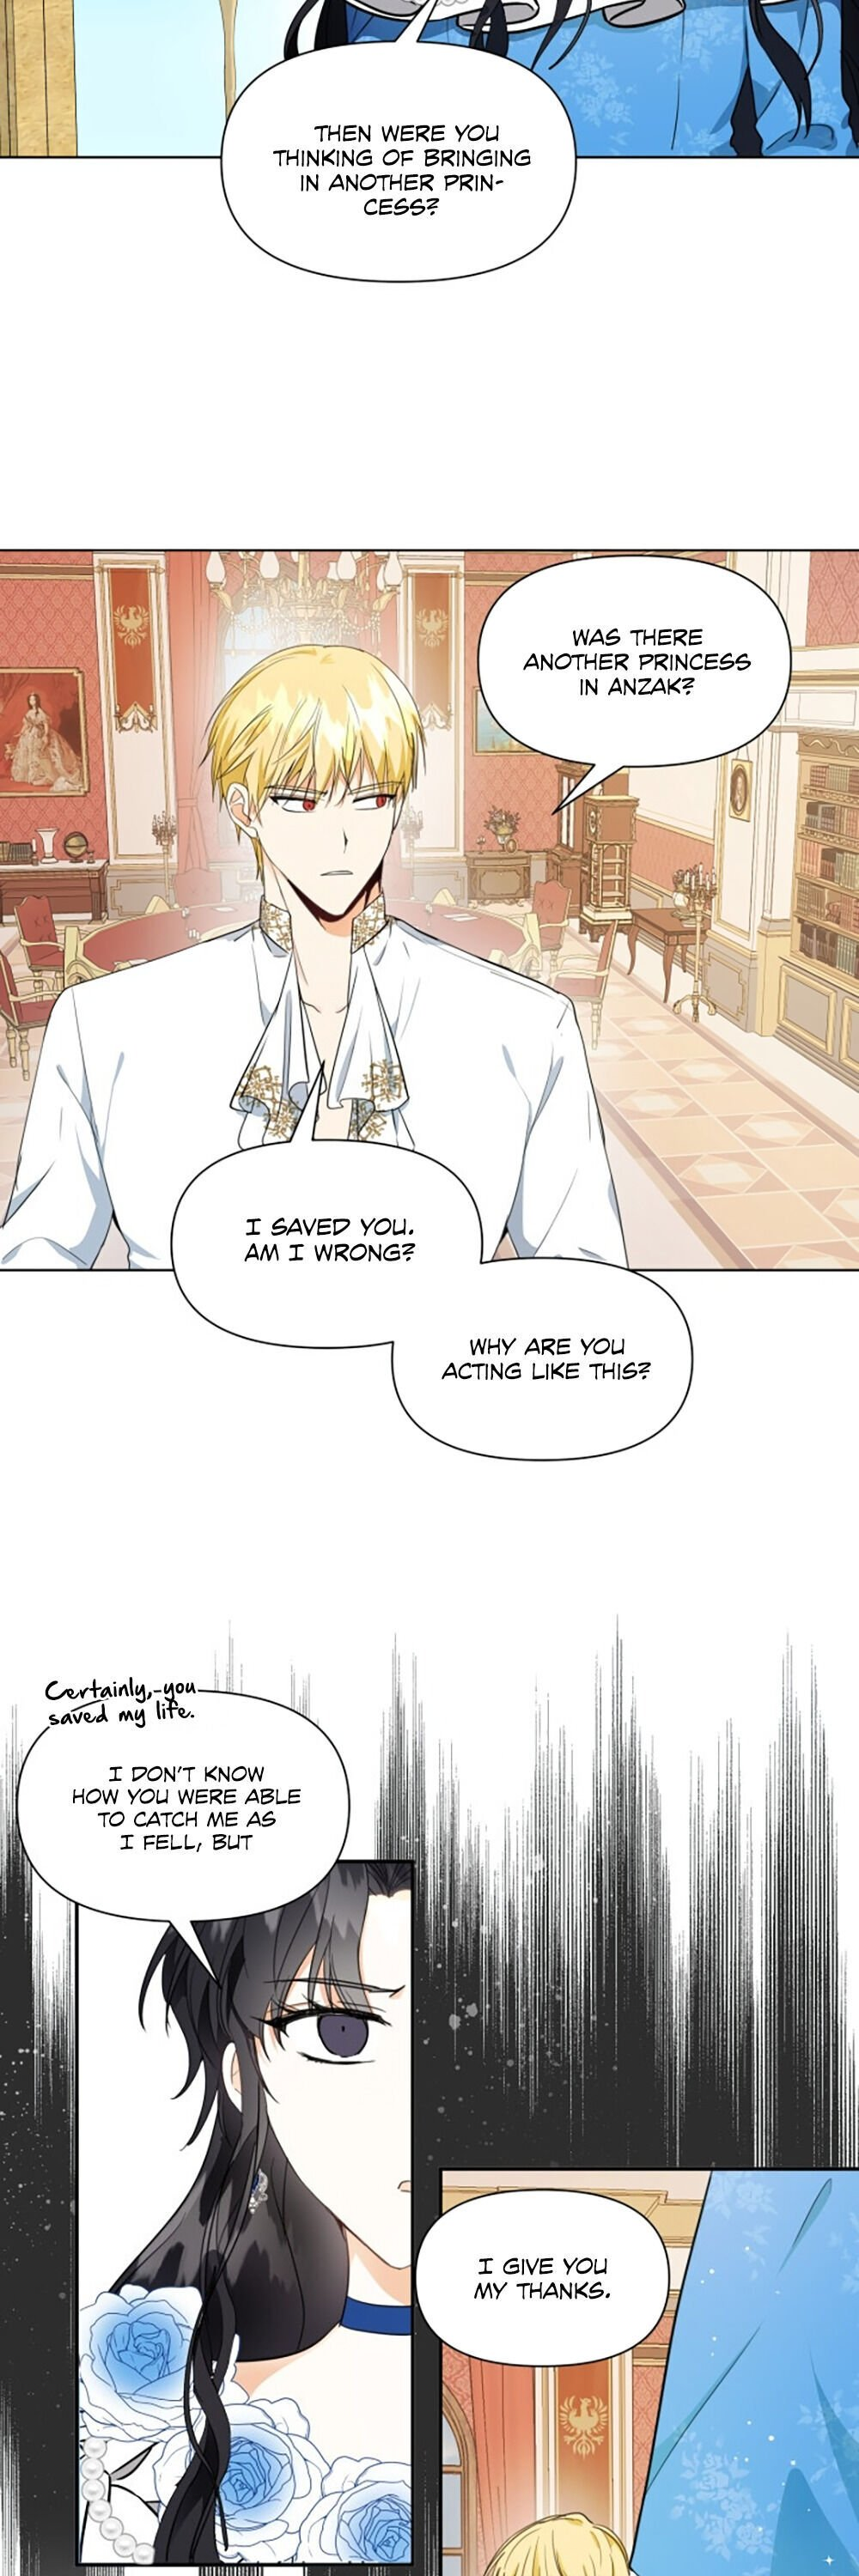 I Became The Wife Of A Tragedy'S Main Lead - chapter 4 - #2